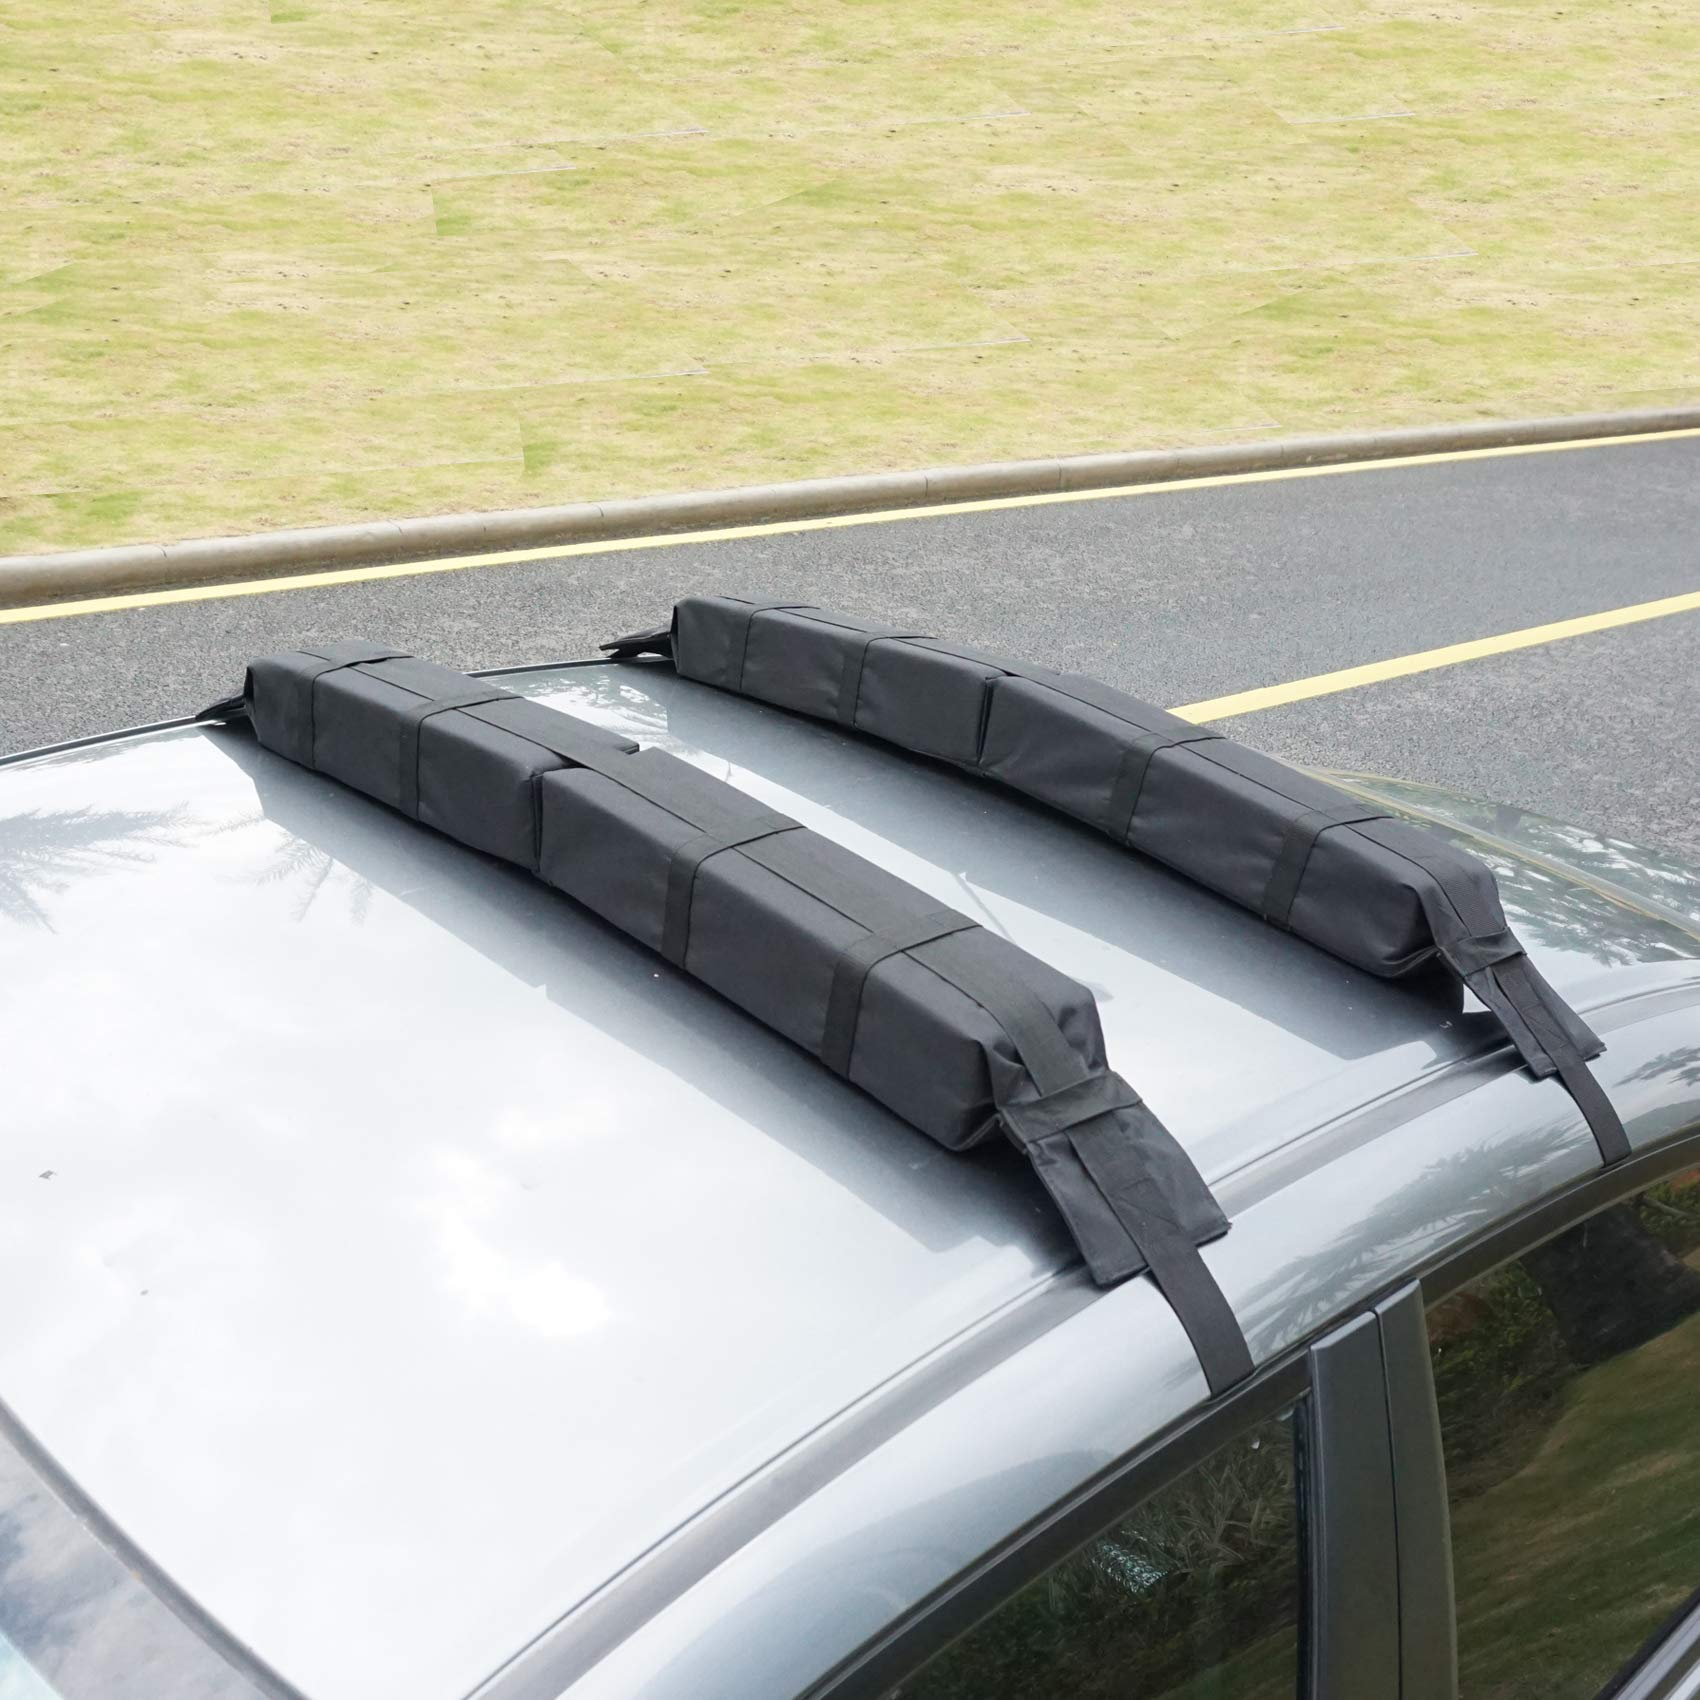 Paddle Board Car Racks >> Roraima Universal Folding Lightweight Anti Vibration Roof Rack Pad For Kayak Canoe Surfboard Paddle Board Sup Snow Board And Water Sports Accessories